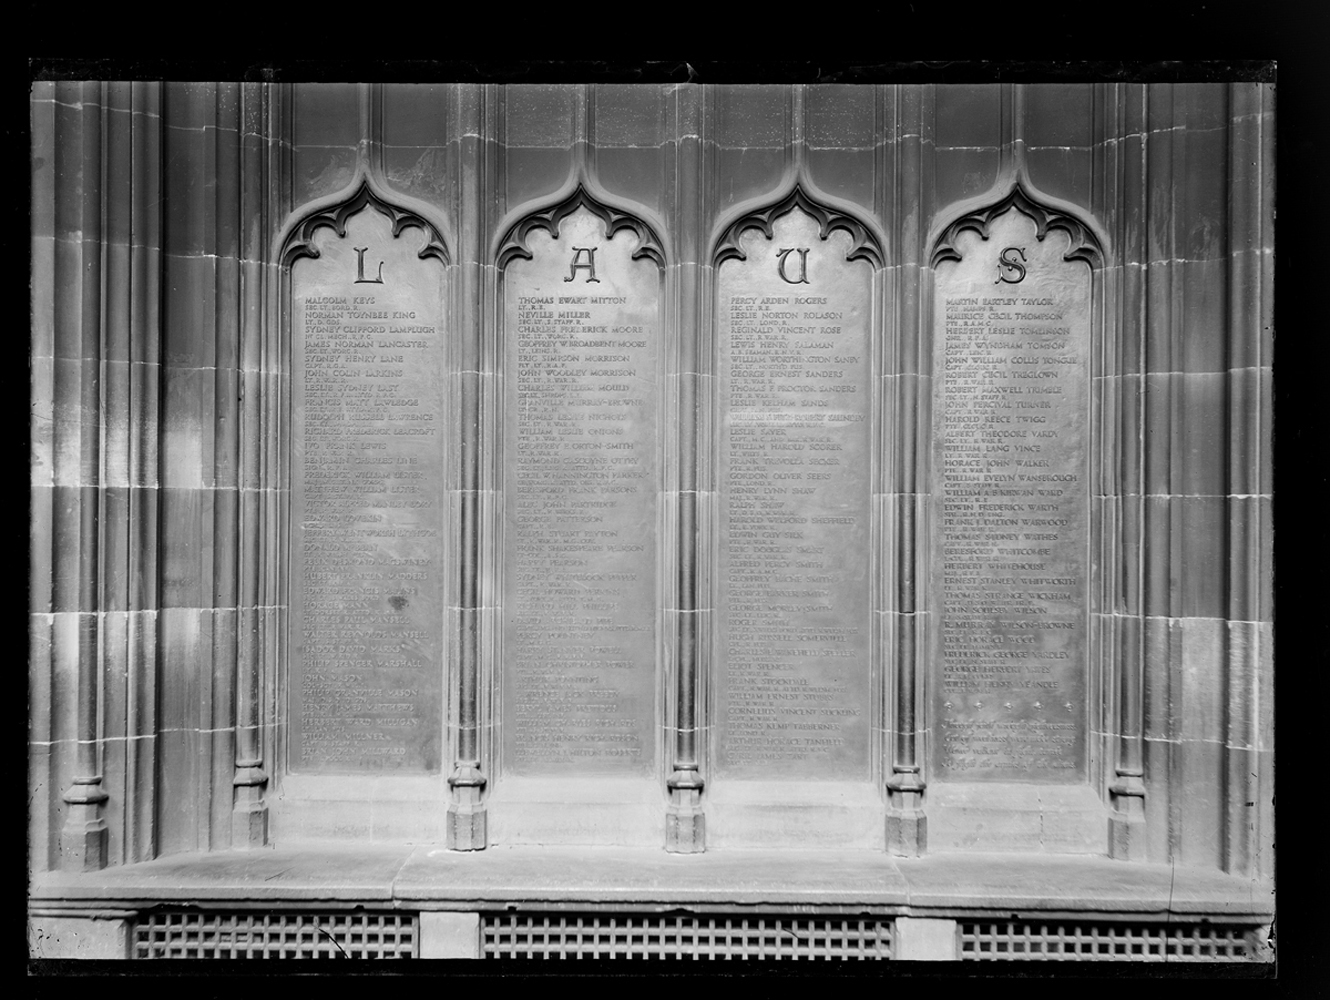 http://davidrowan.org/files/gimgs/54_ke-archive-large-plates---war-memorial-plaques.jpg